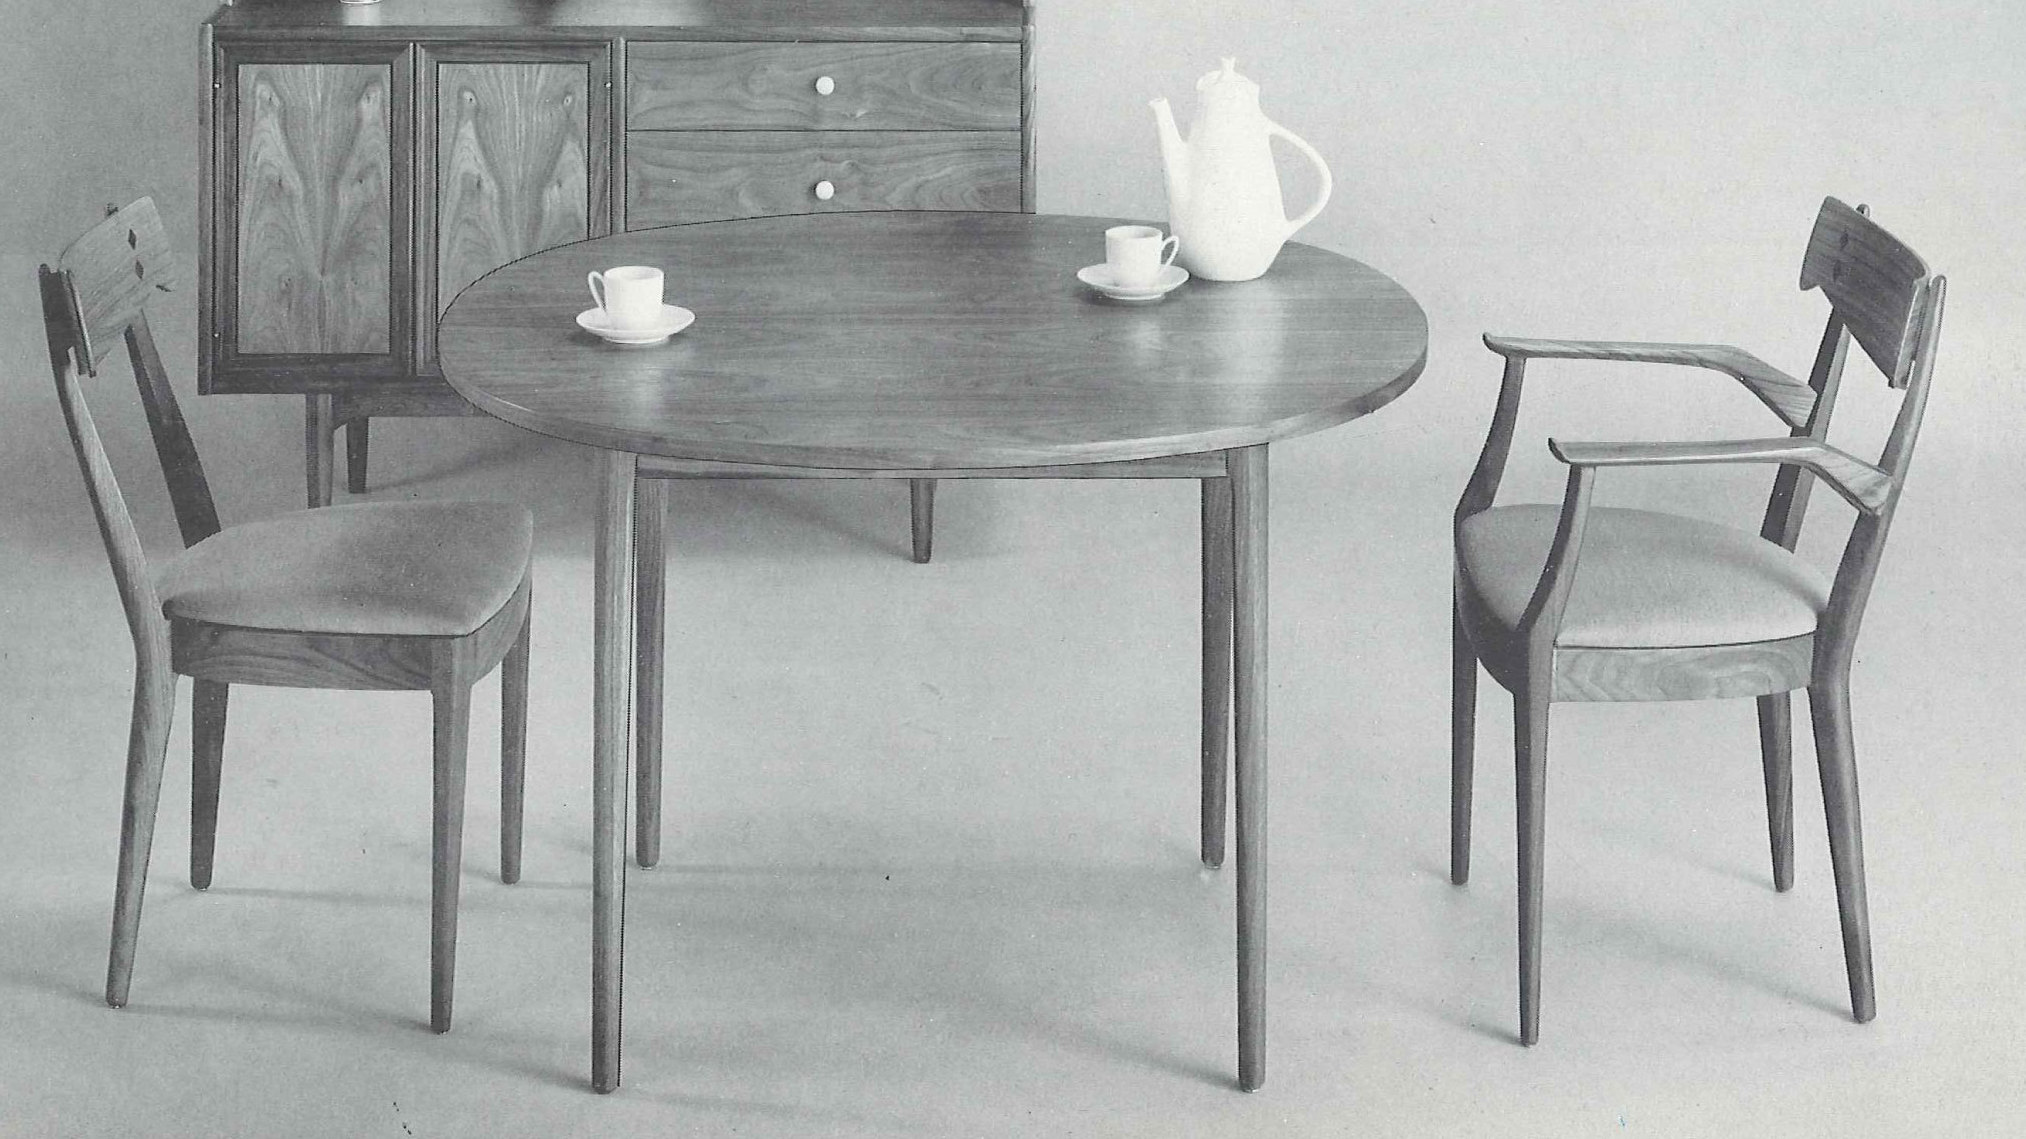 Modern Table And Chairs Midcentury Furniture Grandkid Nostalgia Modern Trend Npr